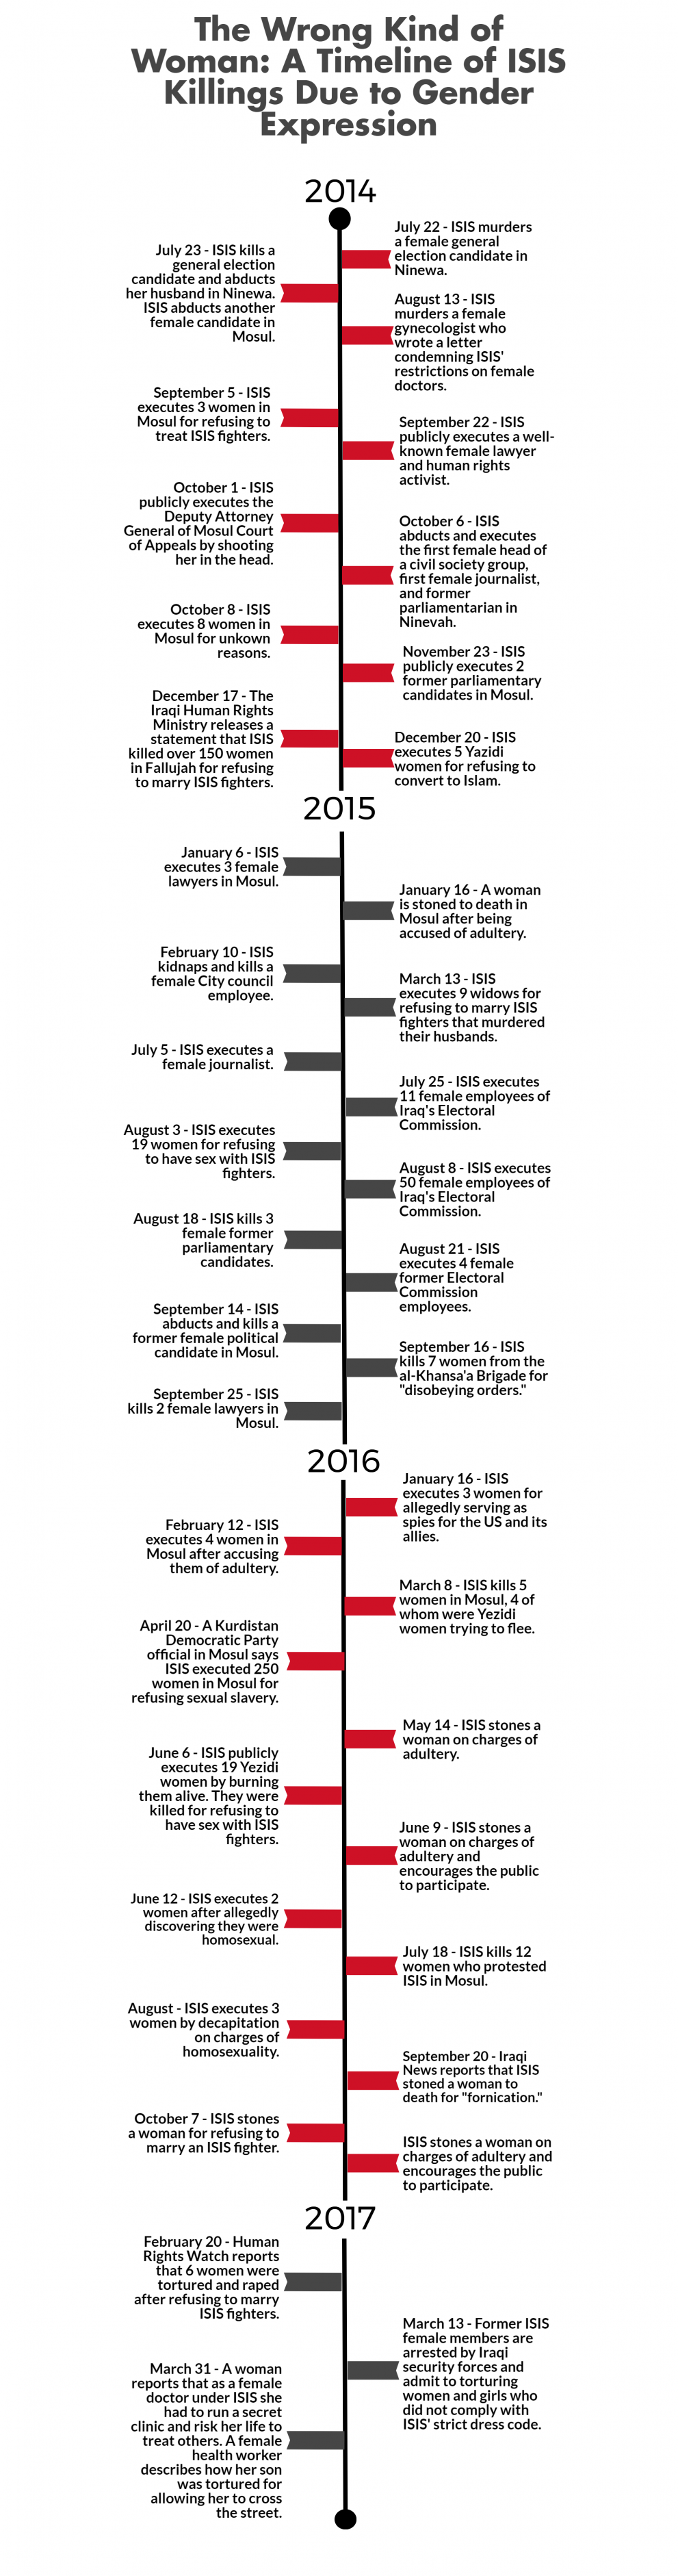 Timeline of ISIS Killings Due to Gender Expression